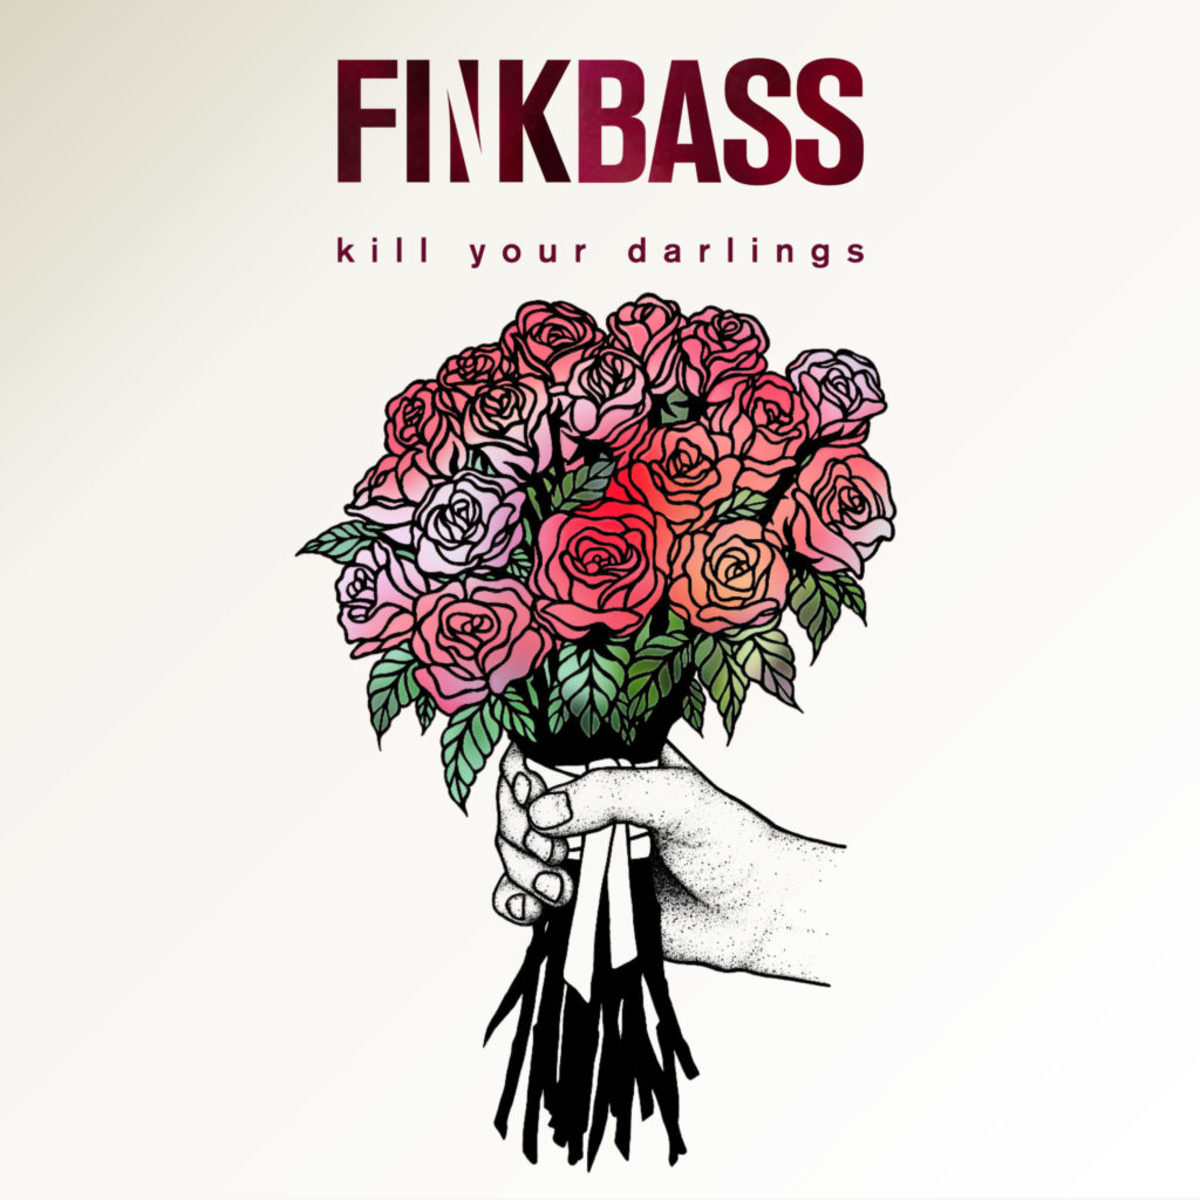 Kill_Your_Darlings_FINKBASS_Digital-1024x1024